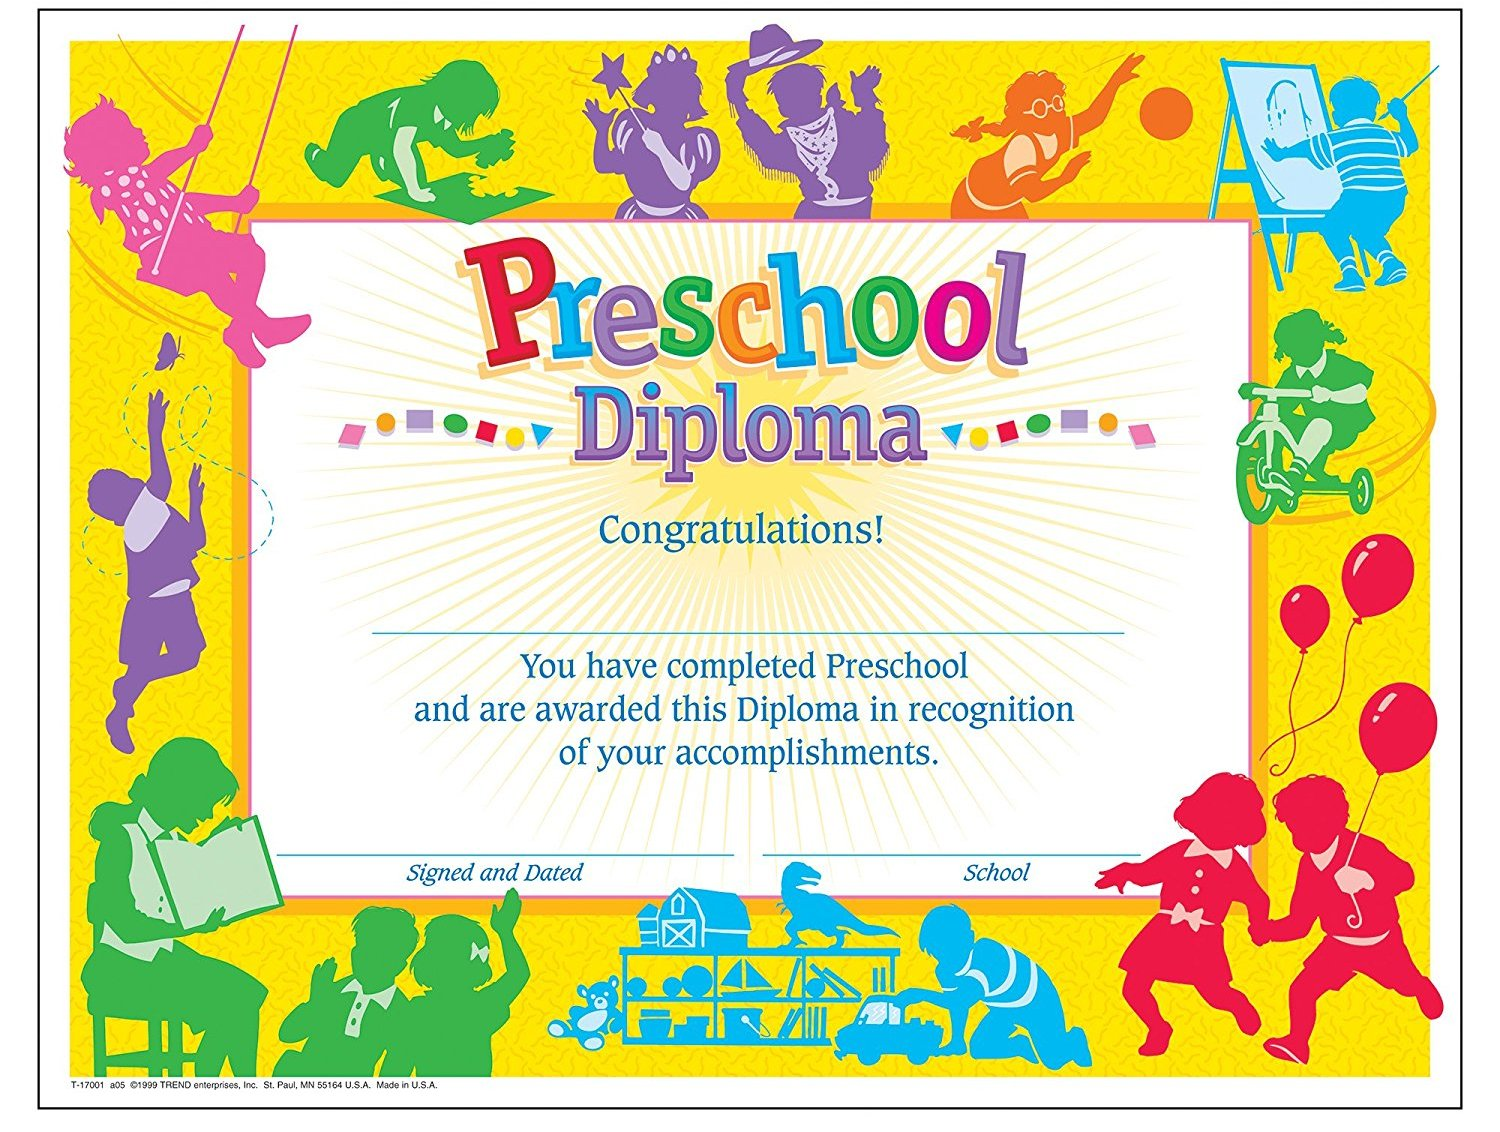 Graduation certificate template for preschool apa templates graduation certificate template for preschool yelopaper